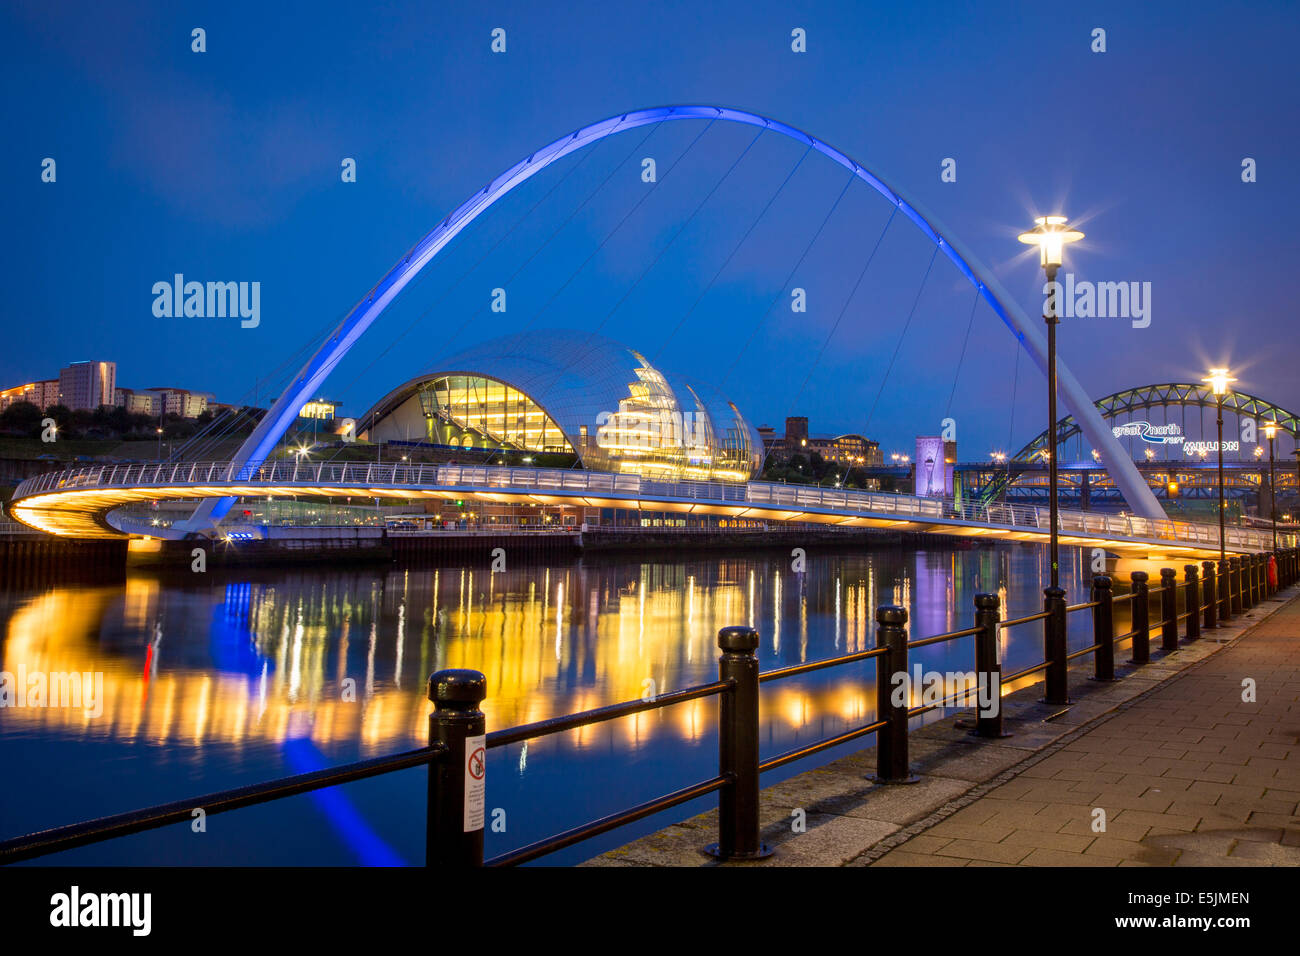 The Gateshead Millenium Bridge and the Sage reflected in River Tyne, Newcastle-Upon-Tyne, Tyne and Wear, England - Stock Image